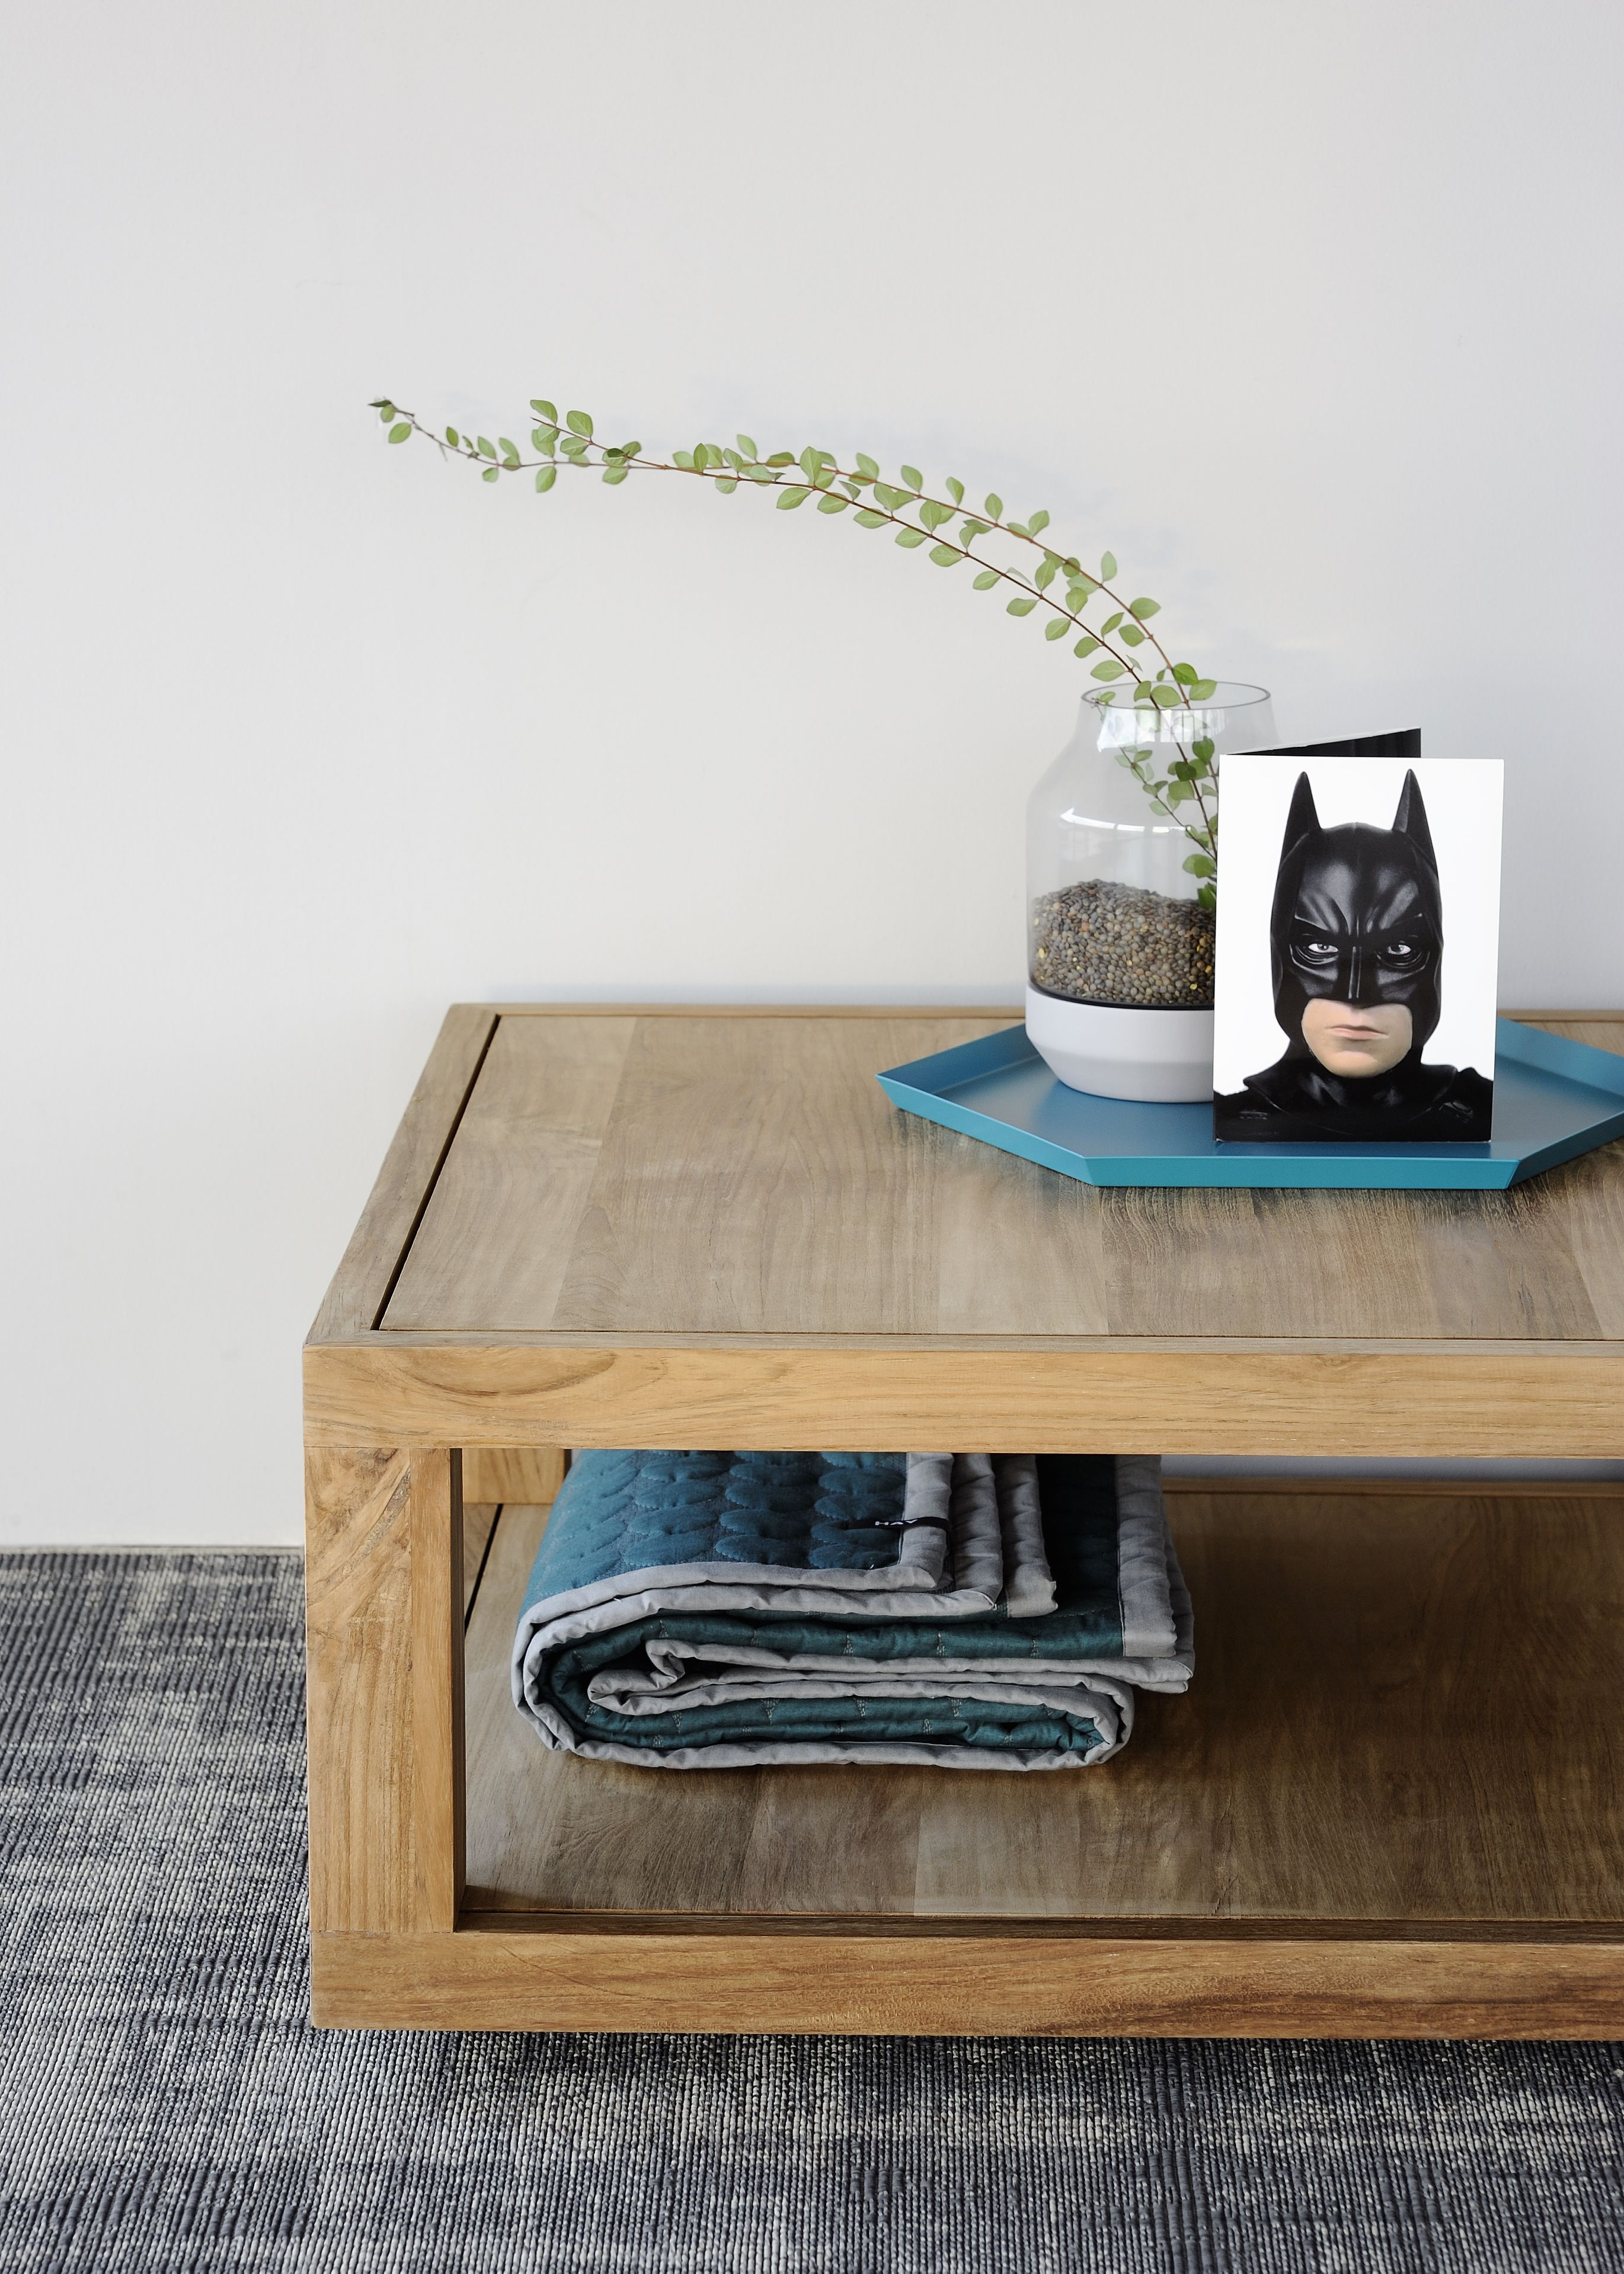 Prime Display Your Favorite Books Vases And Superheros On Creativecarmelina Interior Chair Design Creativecarmelinacom